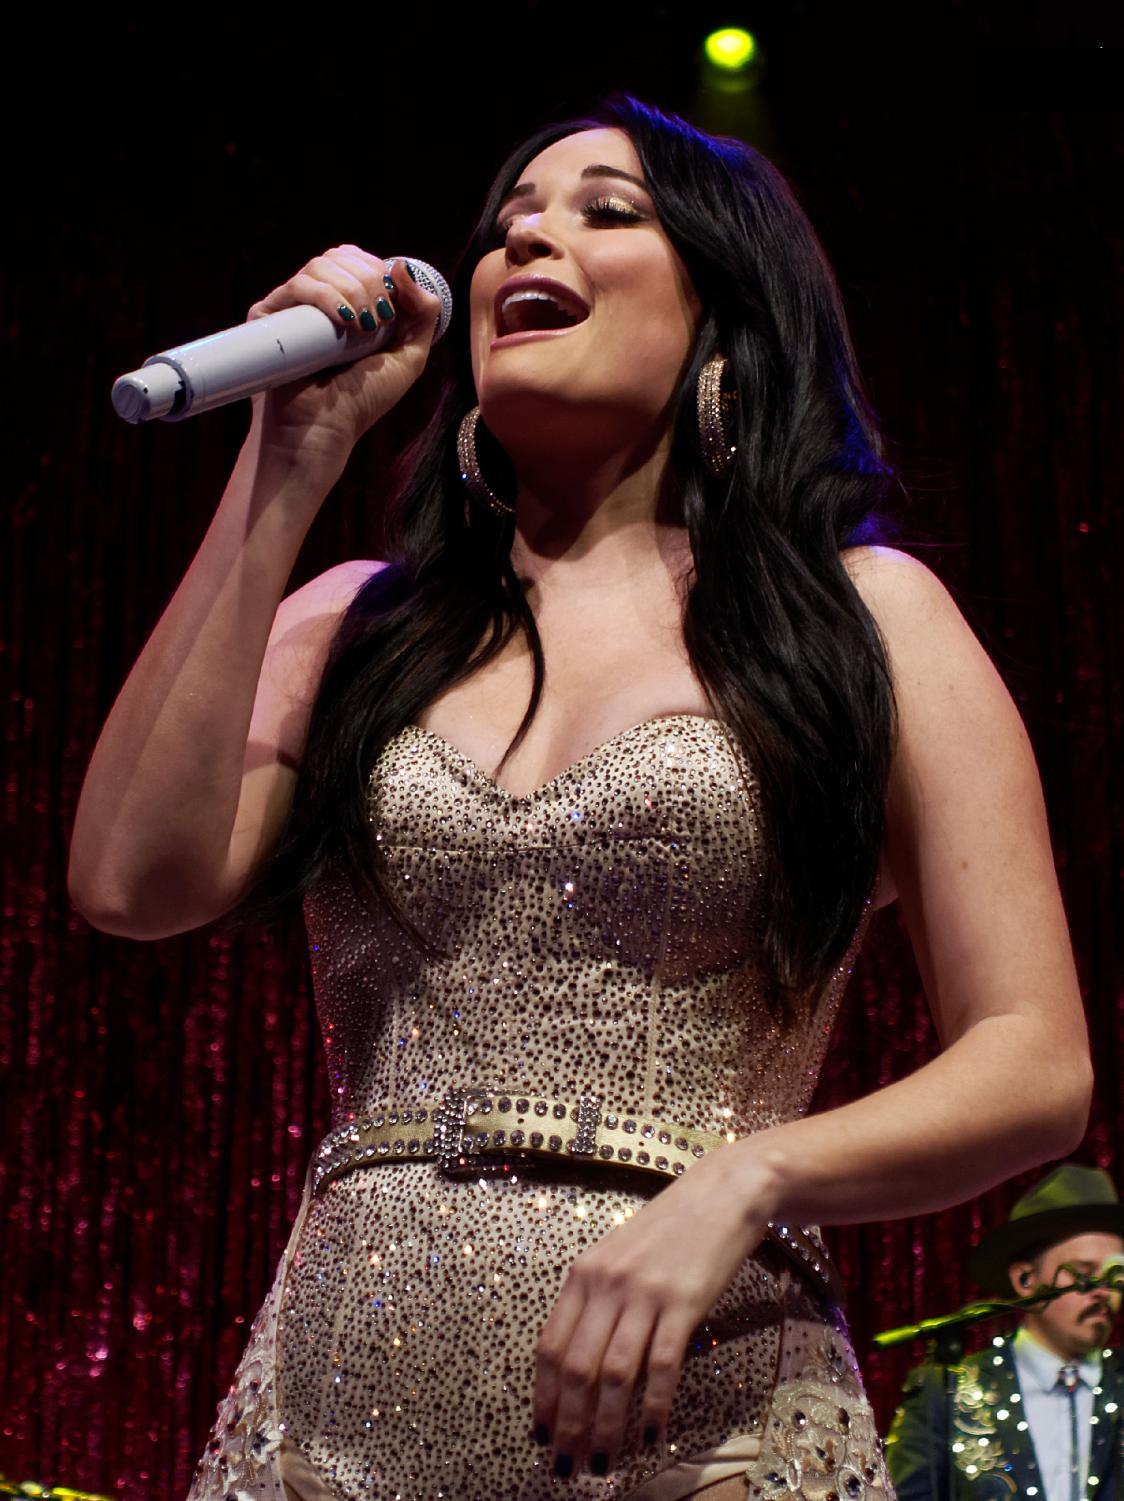 Kacey Musgraves won four Grammys last night, which included Album of the Year, Best Country Song, Best Country Solo Performance and Best Country Album. Photo from commons.wikimedia.org.